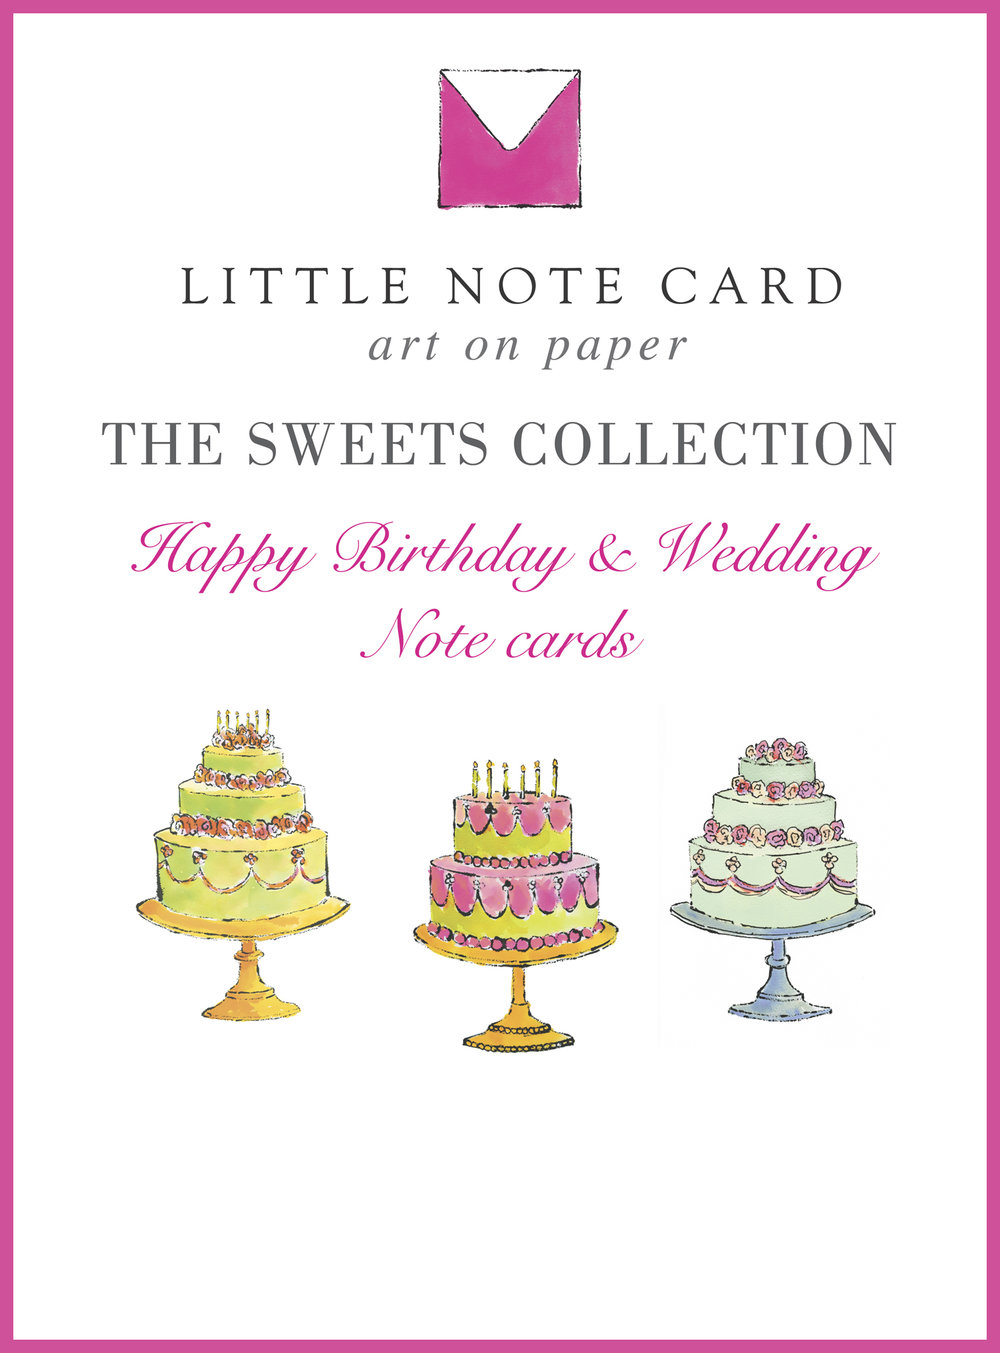 LittleNoteCard_SweetsCollection_Signage